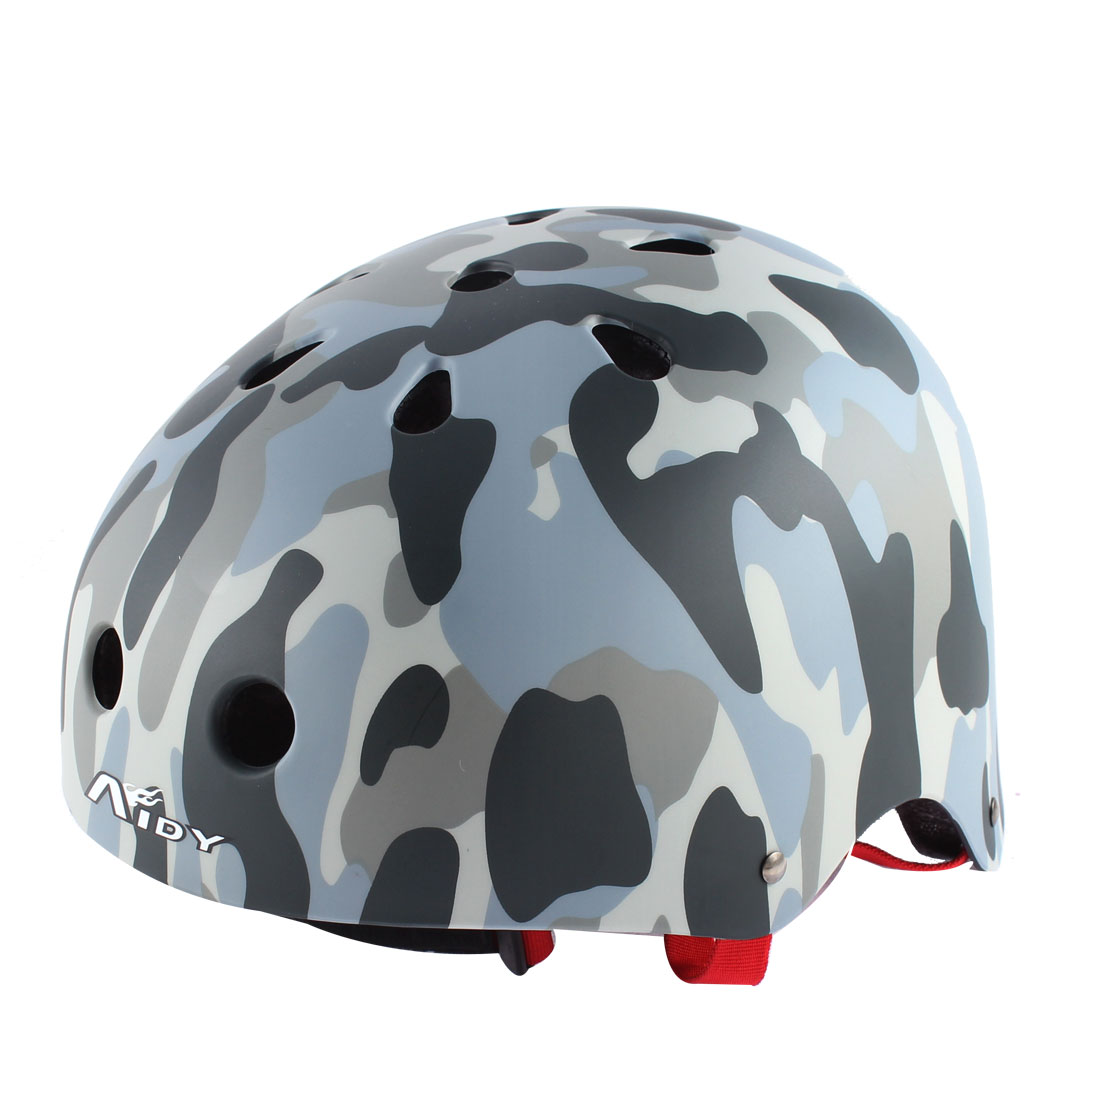 Adults Bicycle Cycling Skating Skateboard Head Protector Helmet Camouflage Gray